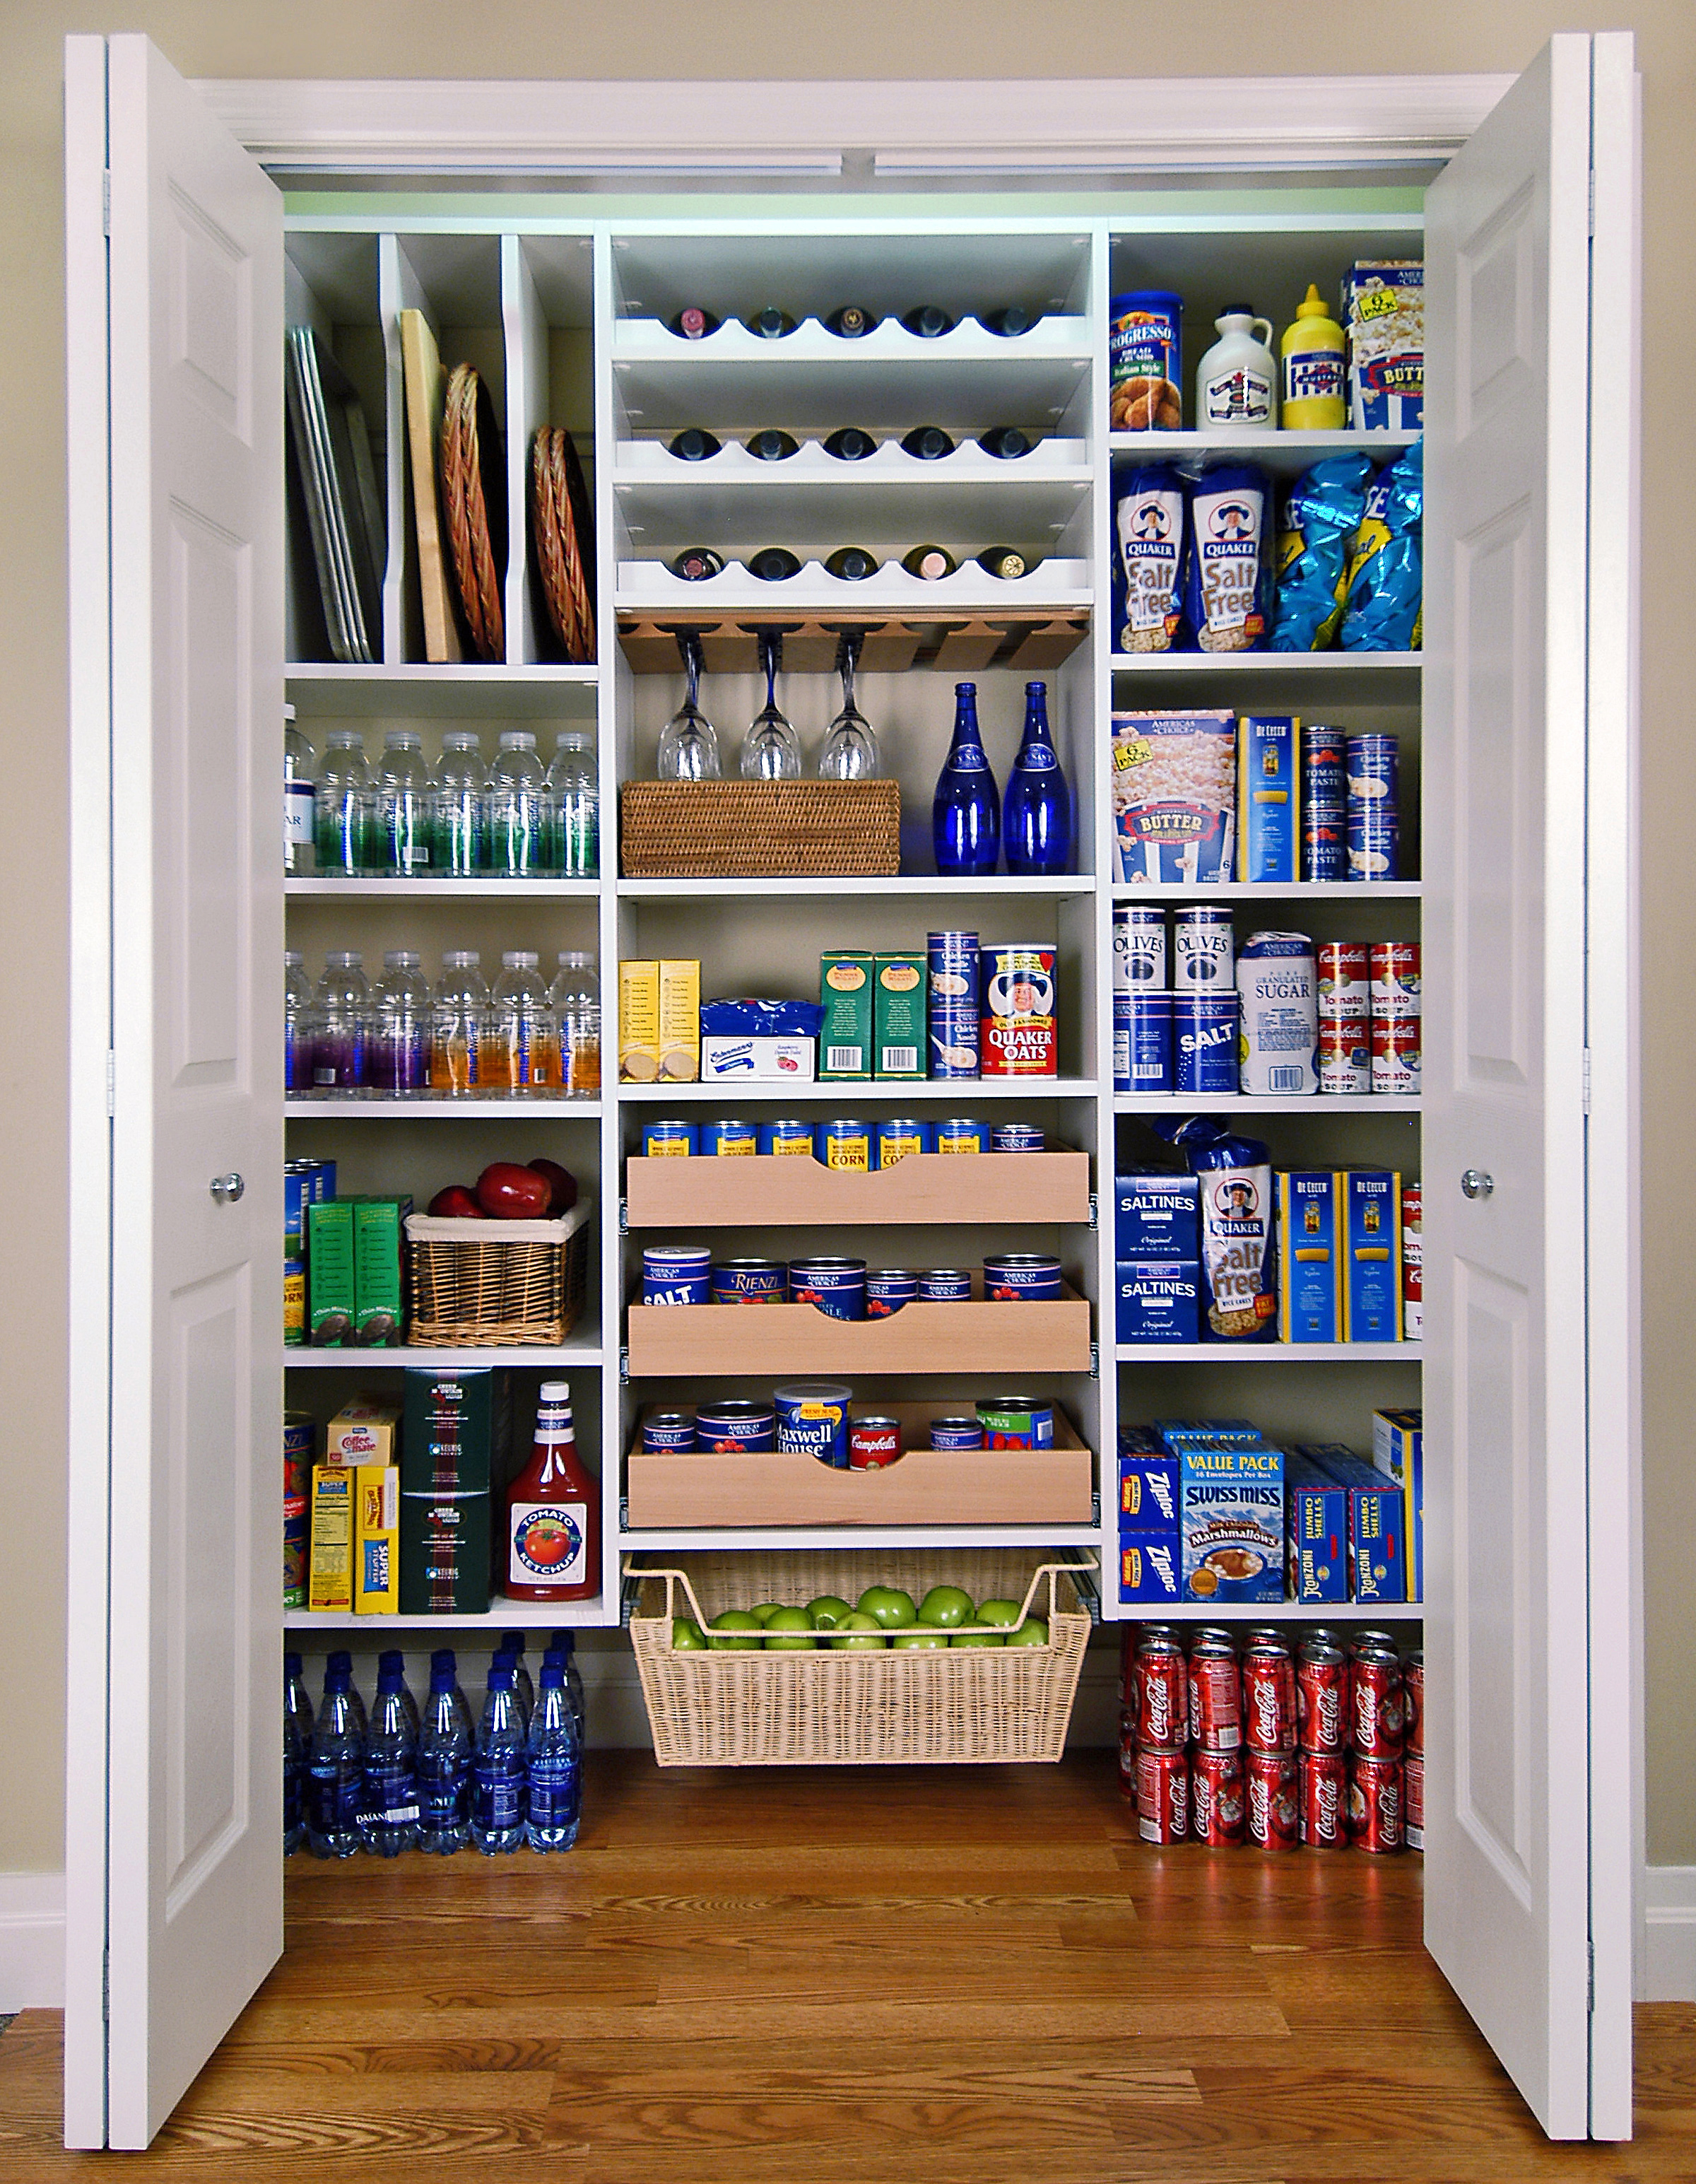 White Walk In Pantry Features Include Regular Shelving Slide Out Baskets Drawers And Corner